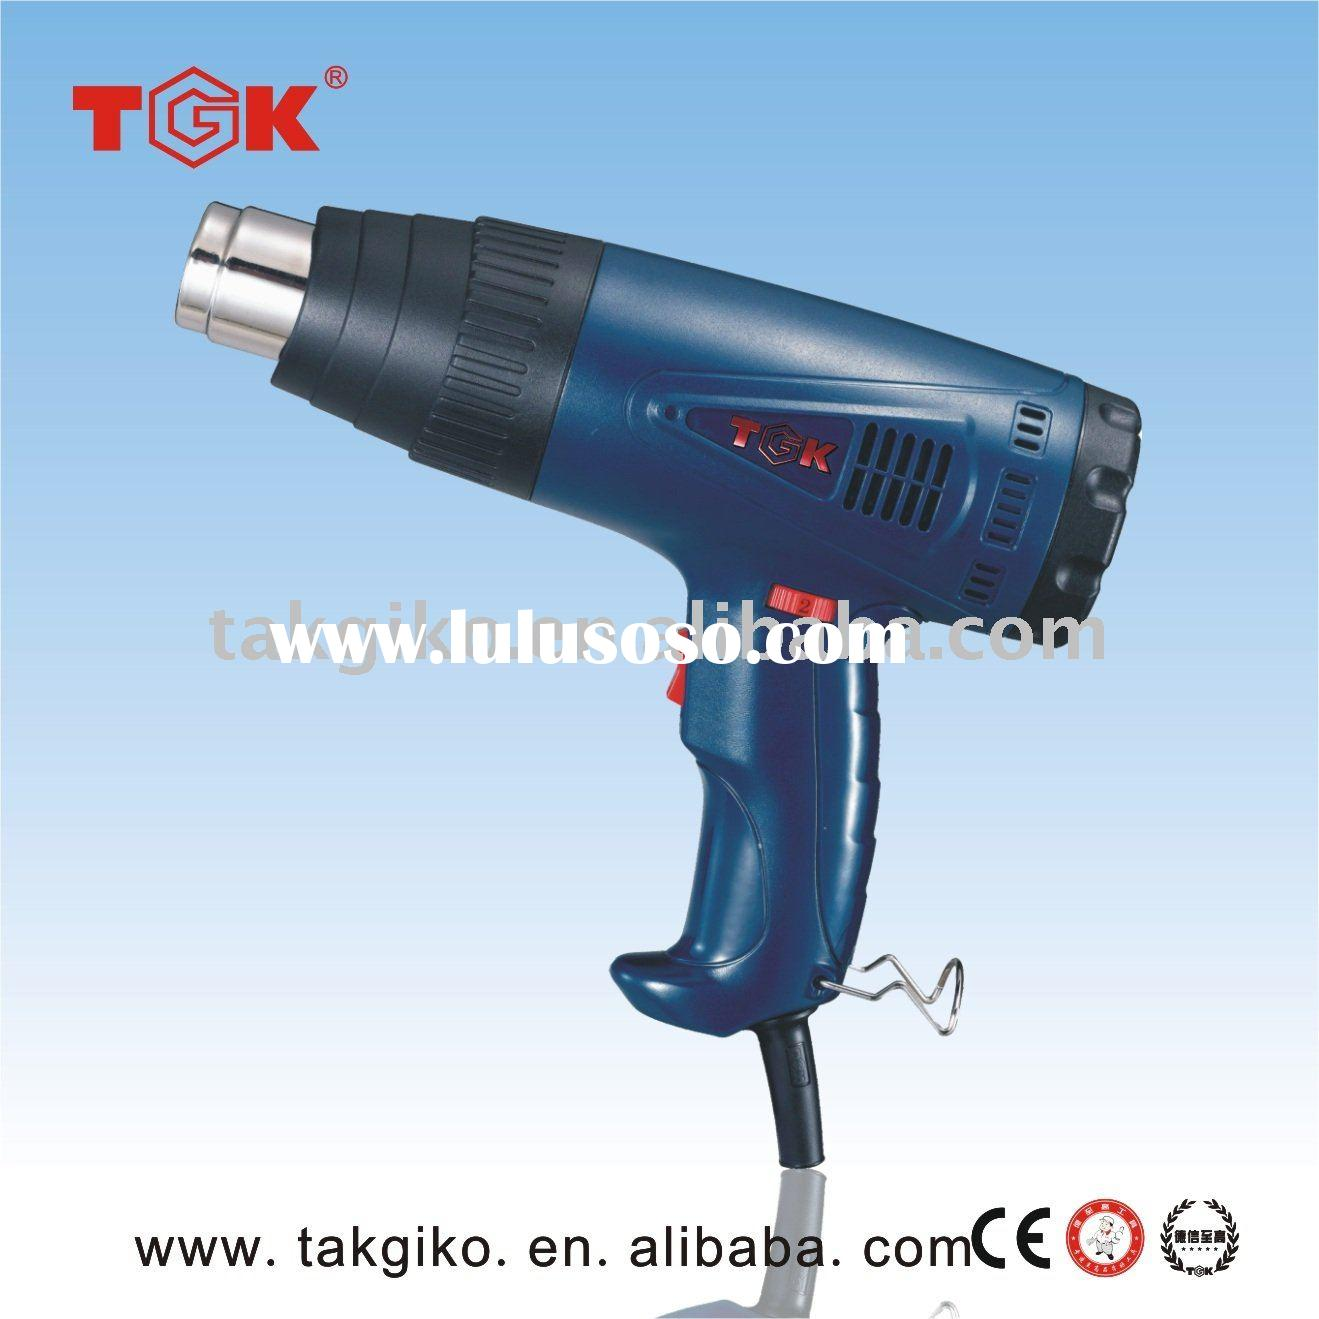 Brand new TGK-8720 2000W hot air blower gun